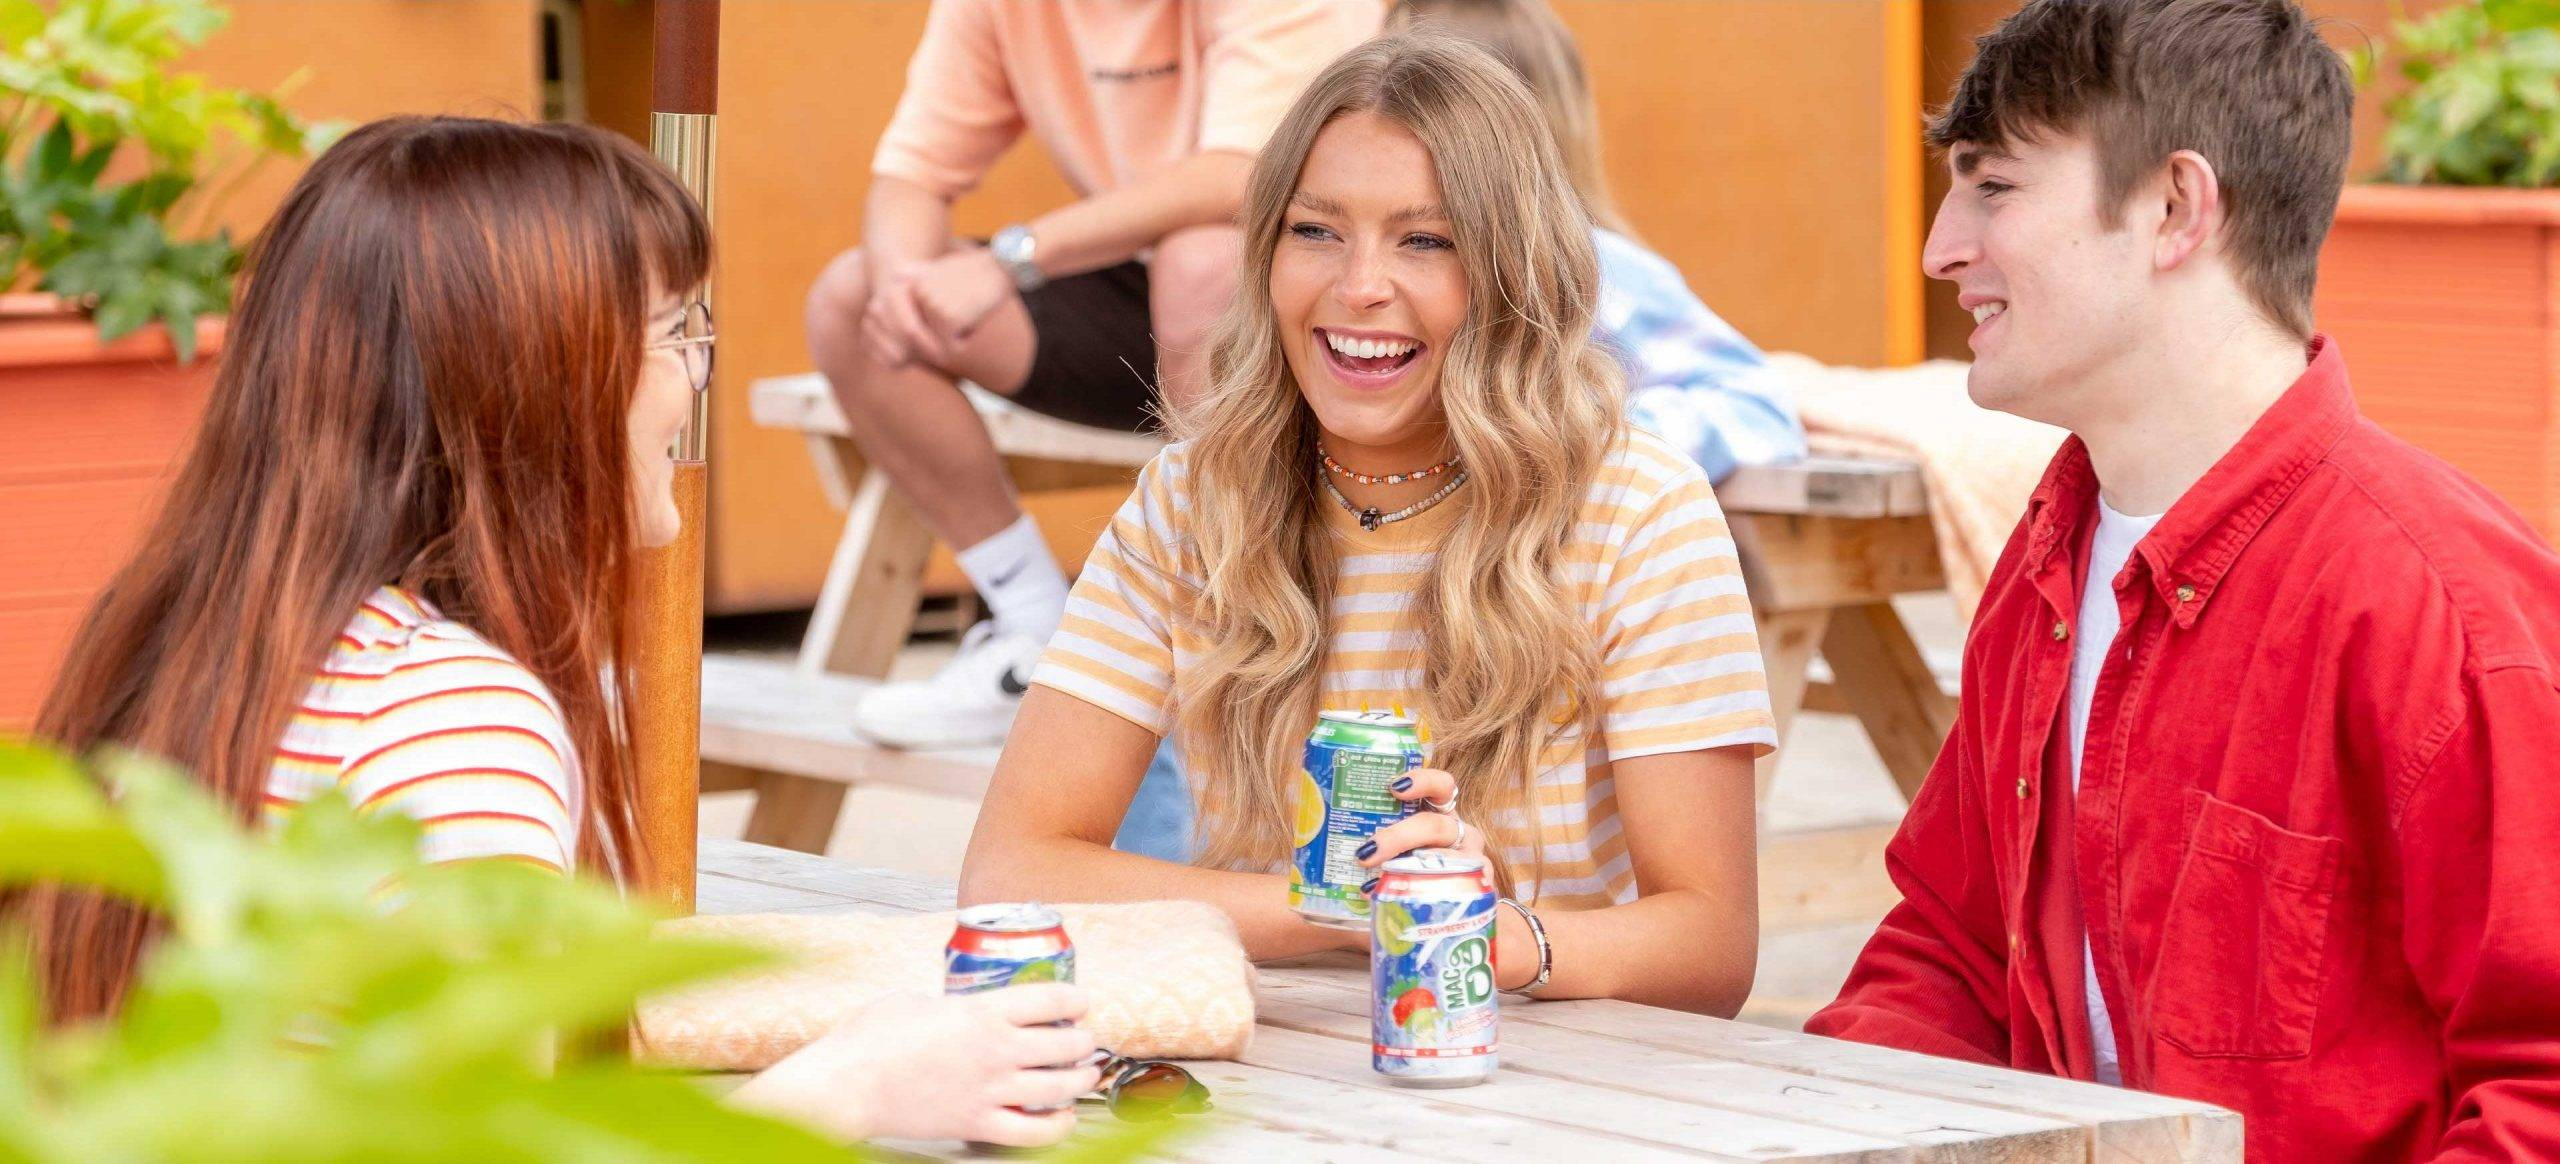 A group of young people laughing at a table, drinking cans of Macb sparkling flavoured spring water